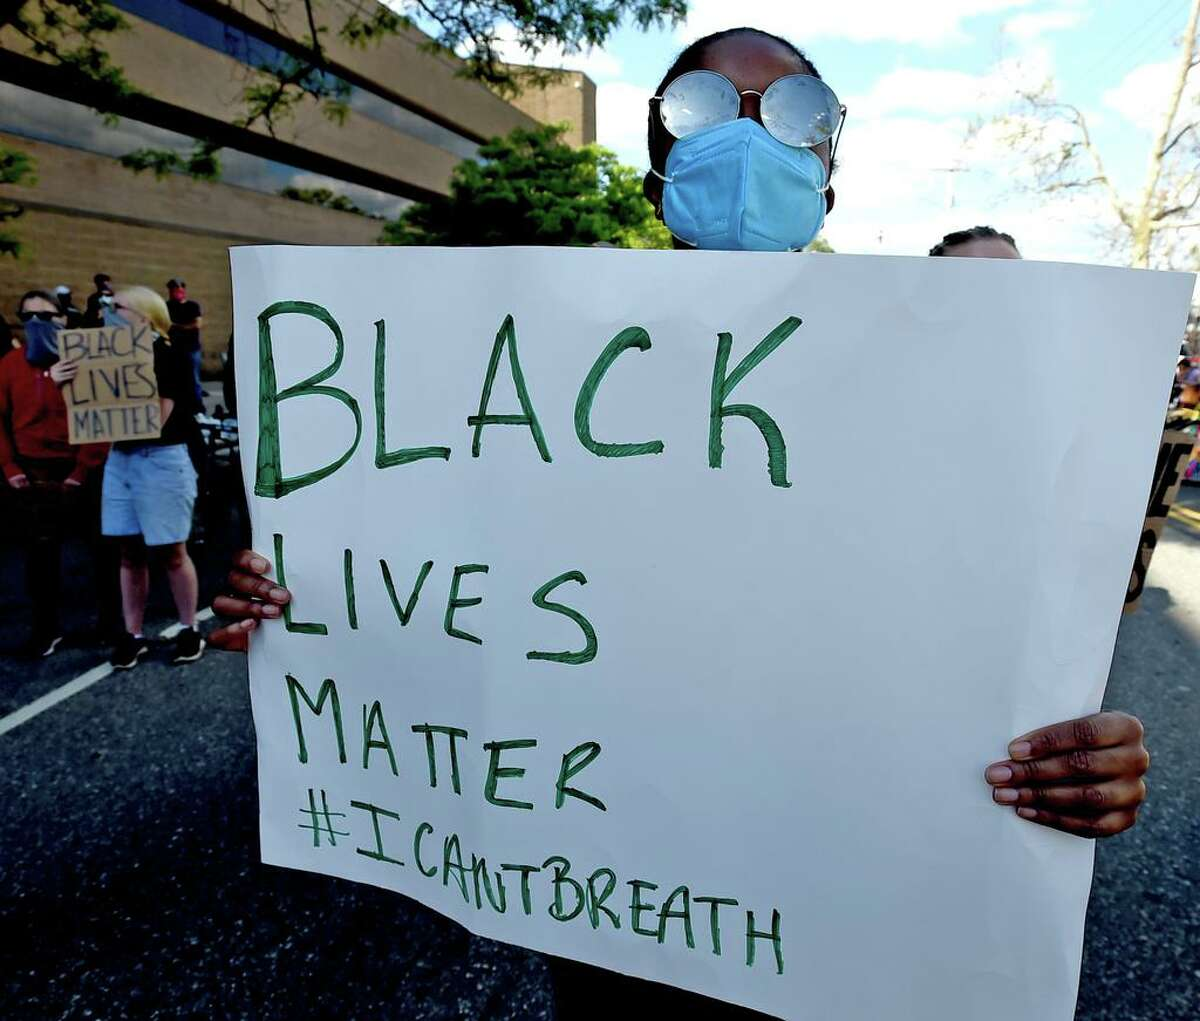 New Haven, Connecticut - Sunday, May 31, 2020: Approximately 1,000 Black Lives Matter protesters and supporters protesting police brutality and the death of George Floyd in Minneapolis S'unday, marched in New Haven Sunday from Broadway to the Green, past Church and blocking the I-95 Highway in New Haven in both directions and then on to New Haven Police Headquarters protesting police brutality and the death of George Floyd in Minneapolis. As of 5:30 P.M. their were no police confrontations.